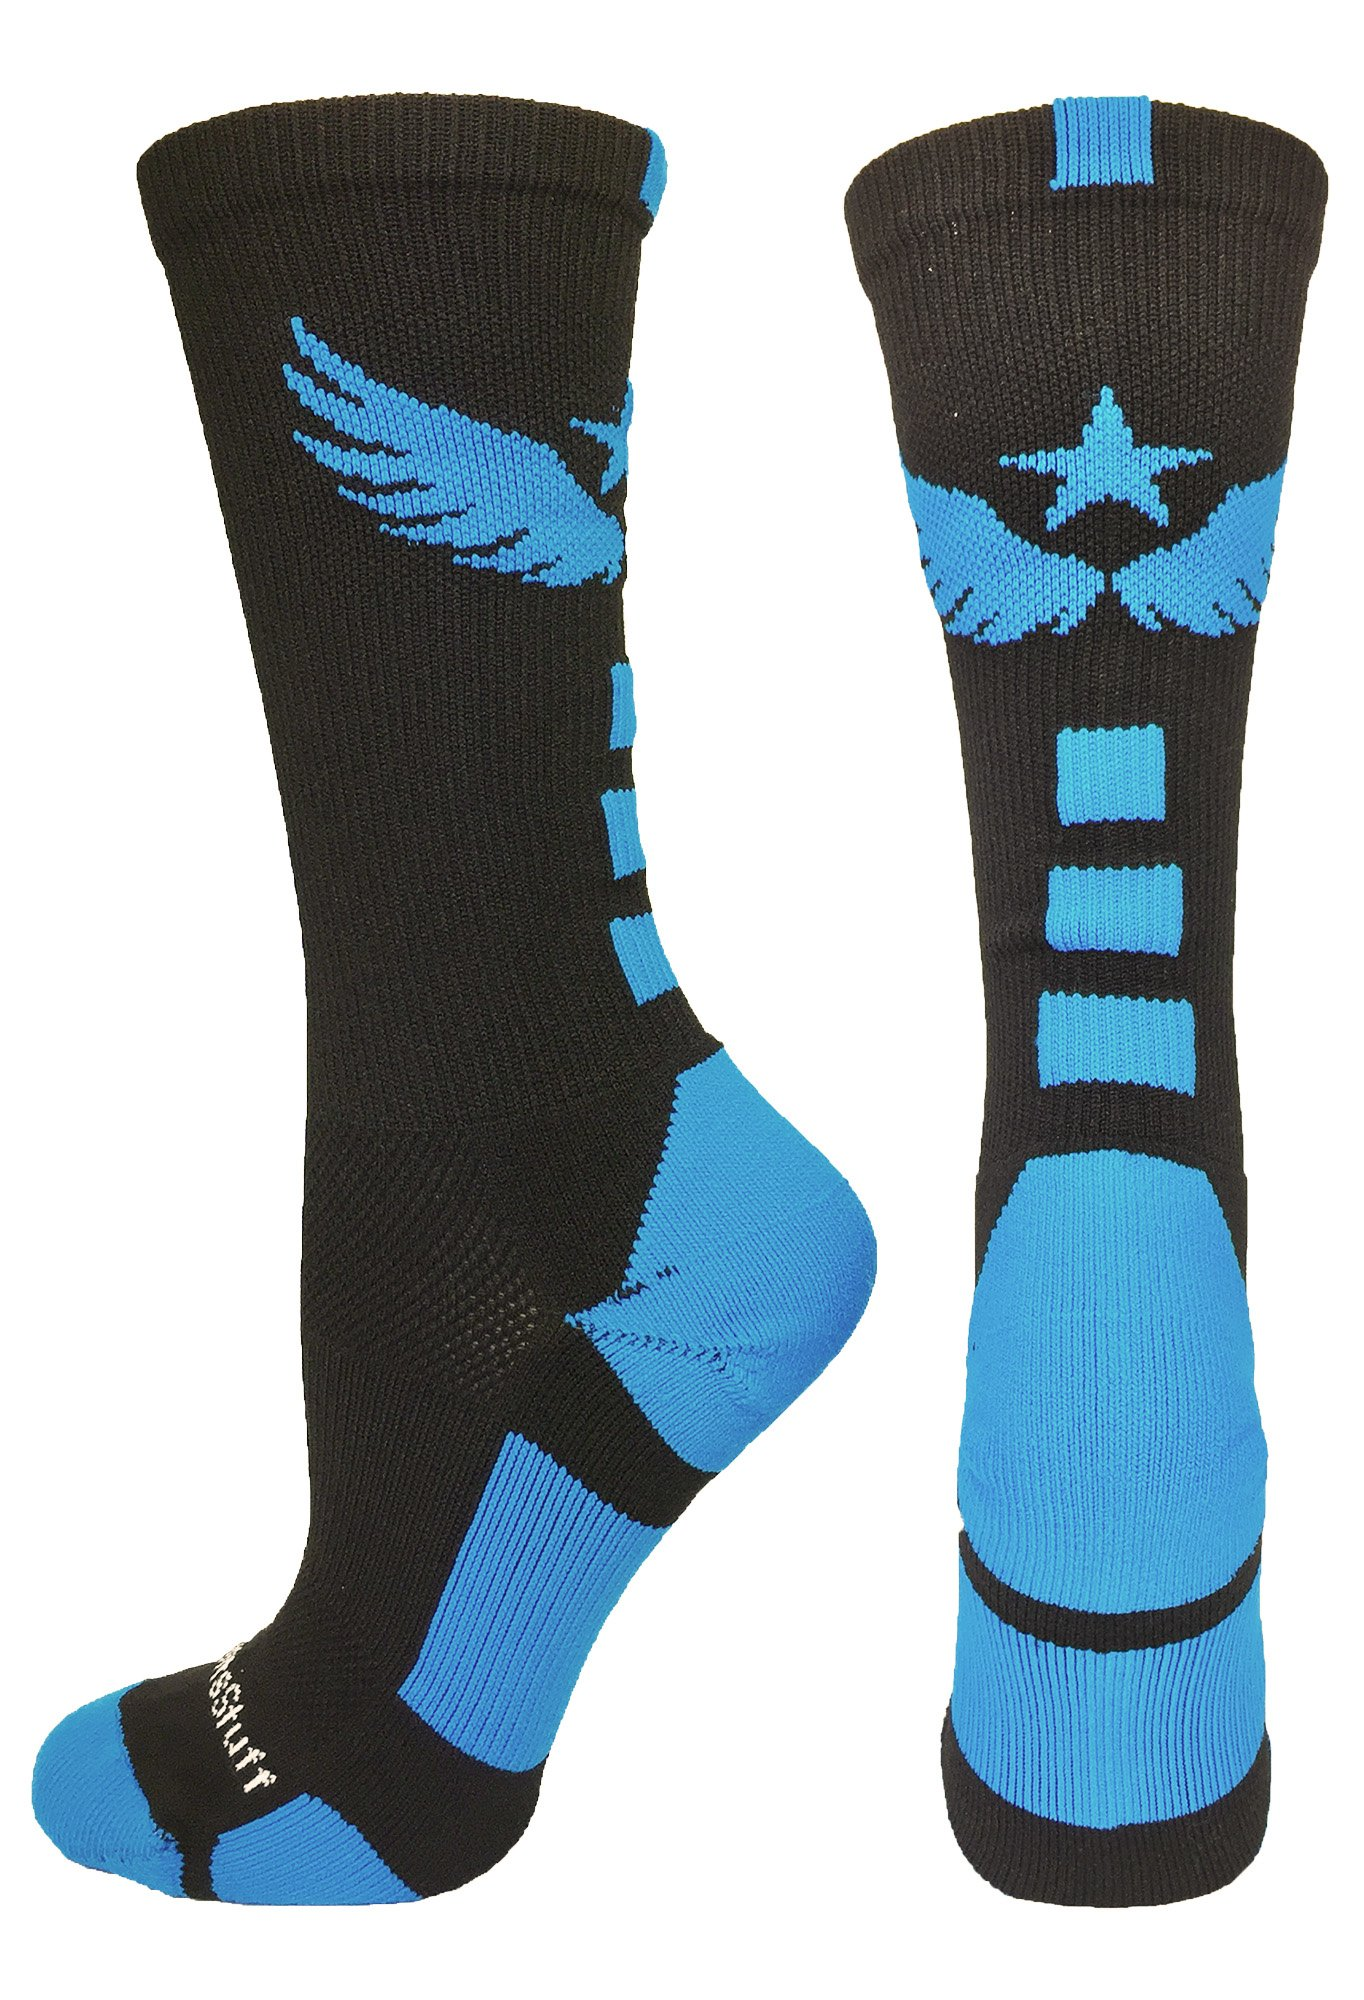 MadSportsStuff Light Speed Athletic Crew Socks (Black/Electric Blue, Small) by MadSportsStuff